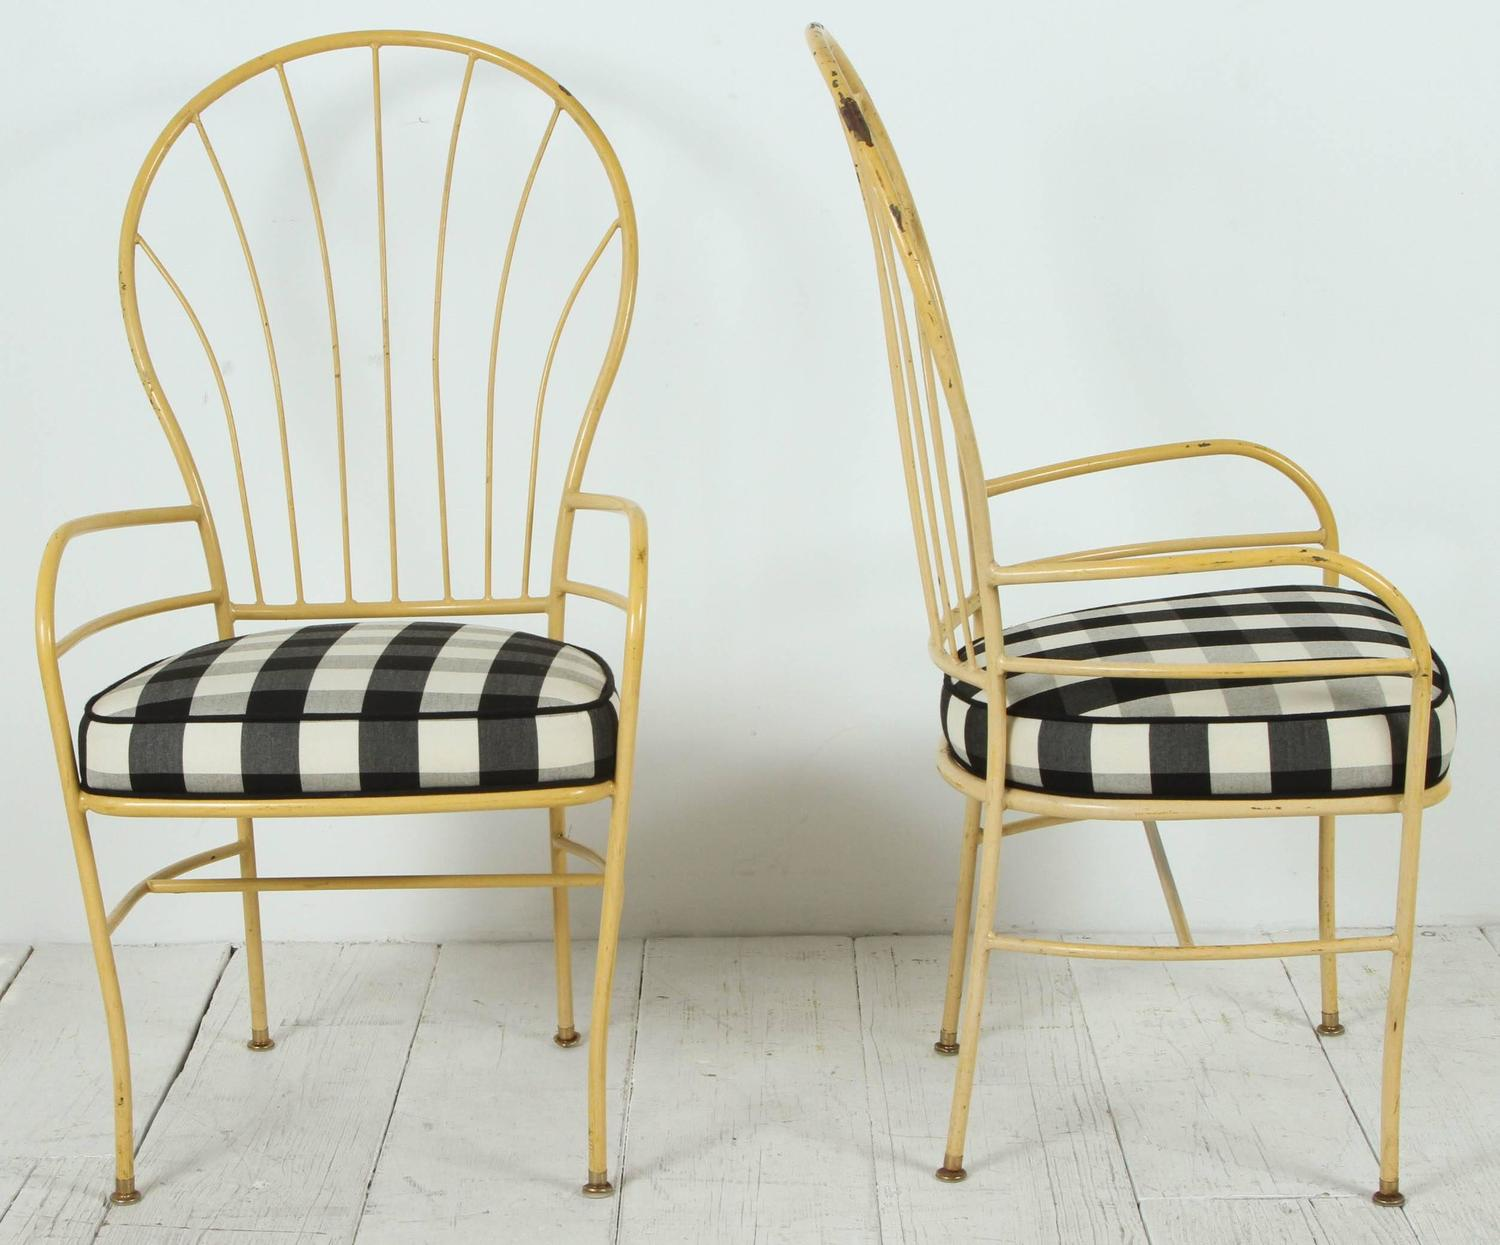 fabric outdoor chairs leather rocking uk set of four yellow metal in black and white